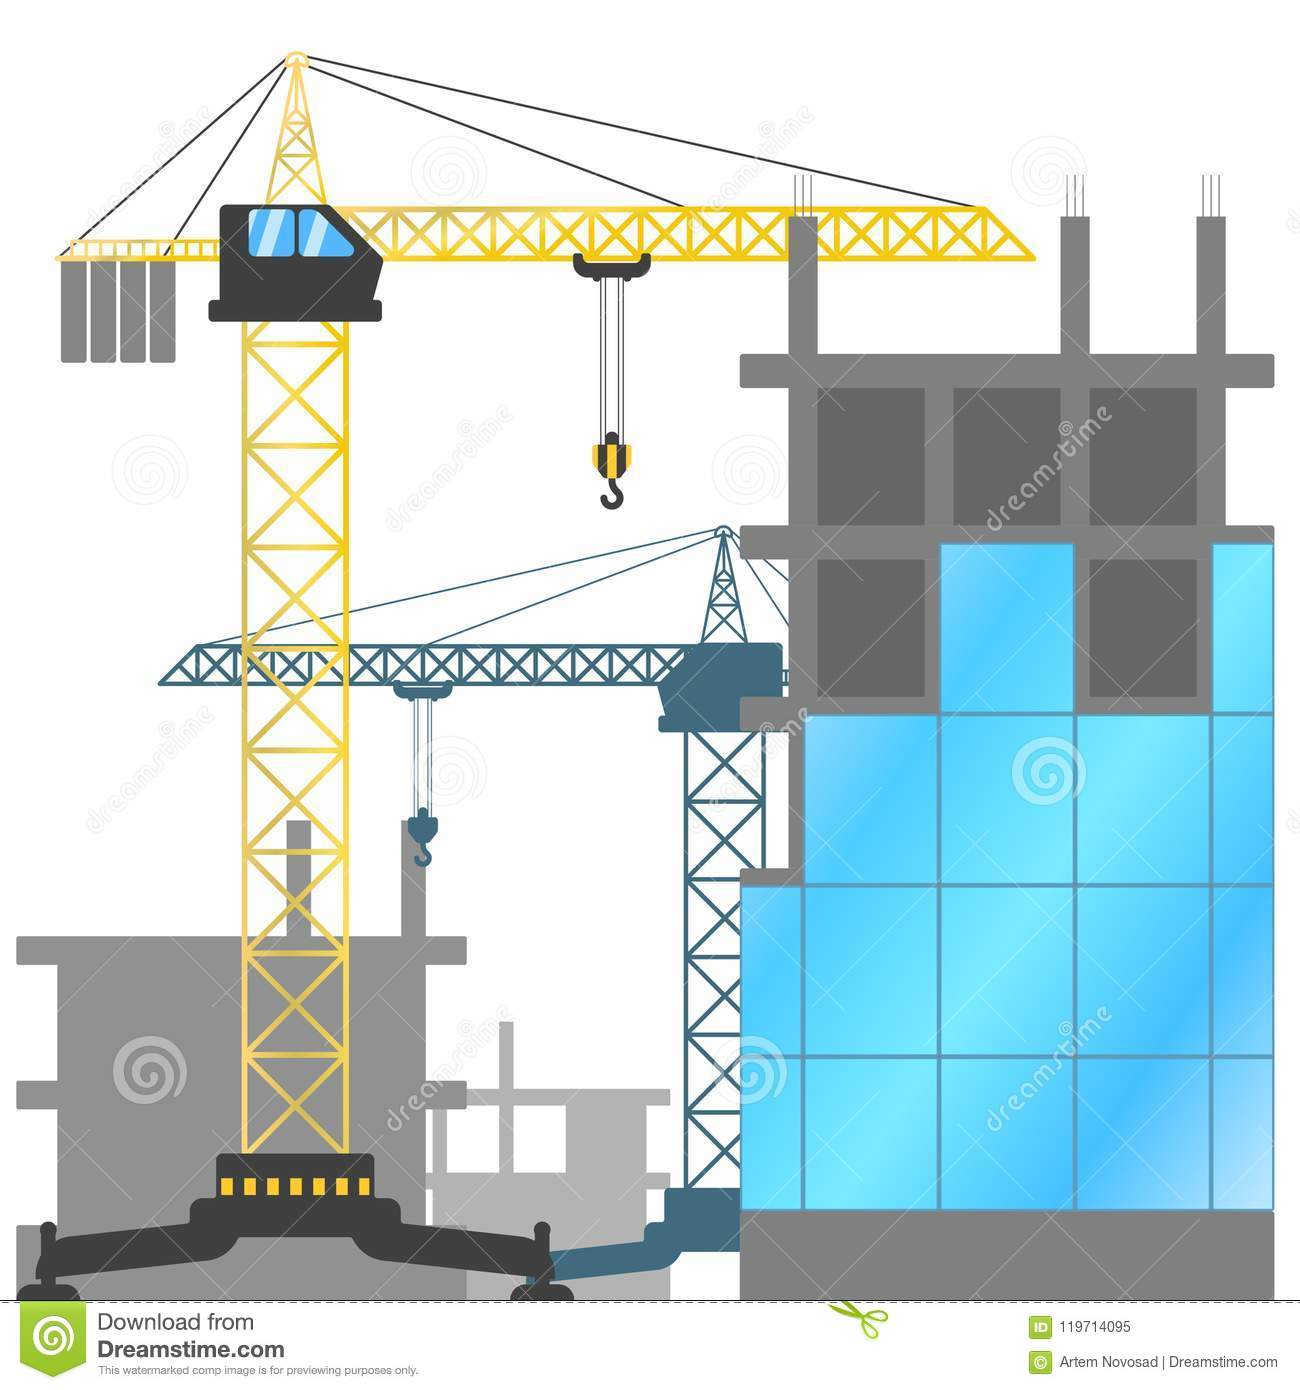 Construction site with tower cranes and buildings under construction. Vector illustration of the construction of houses.